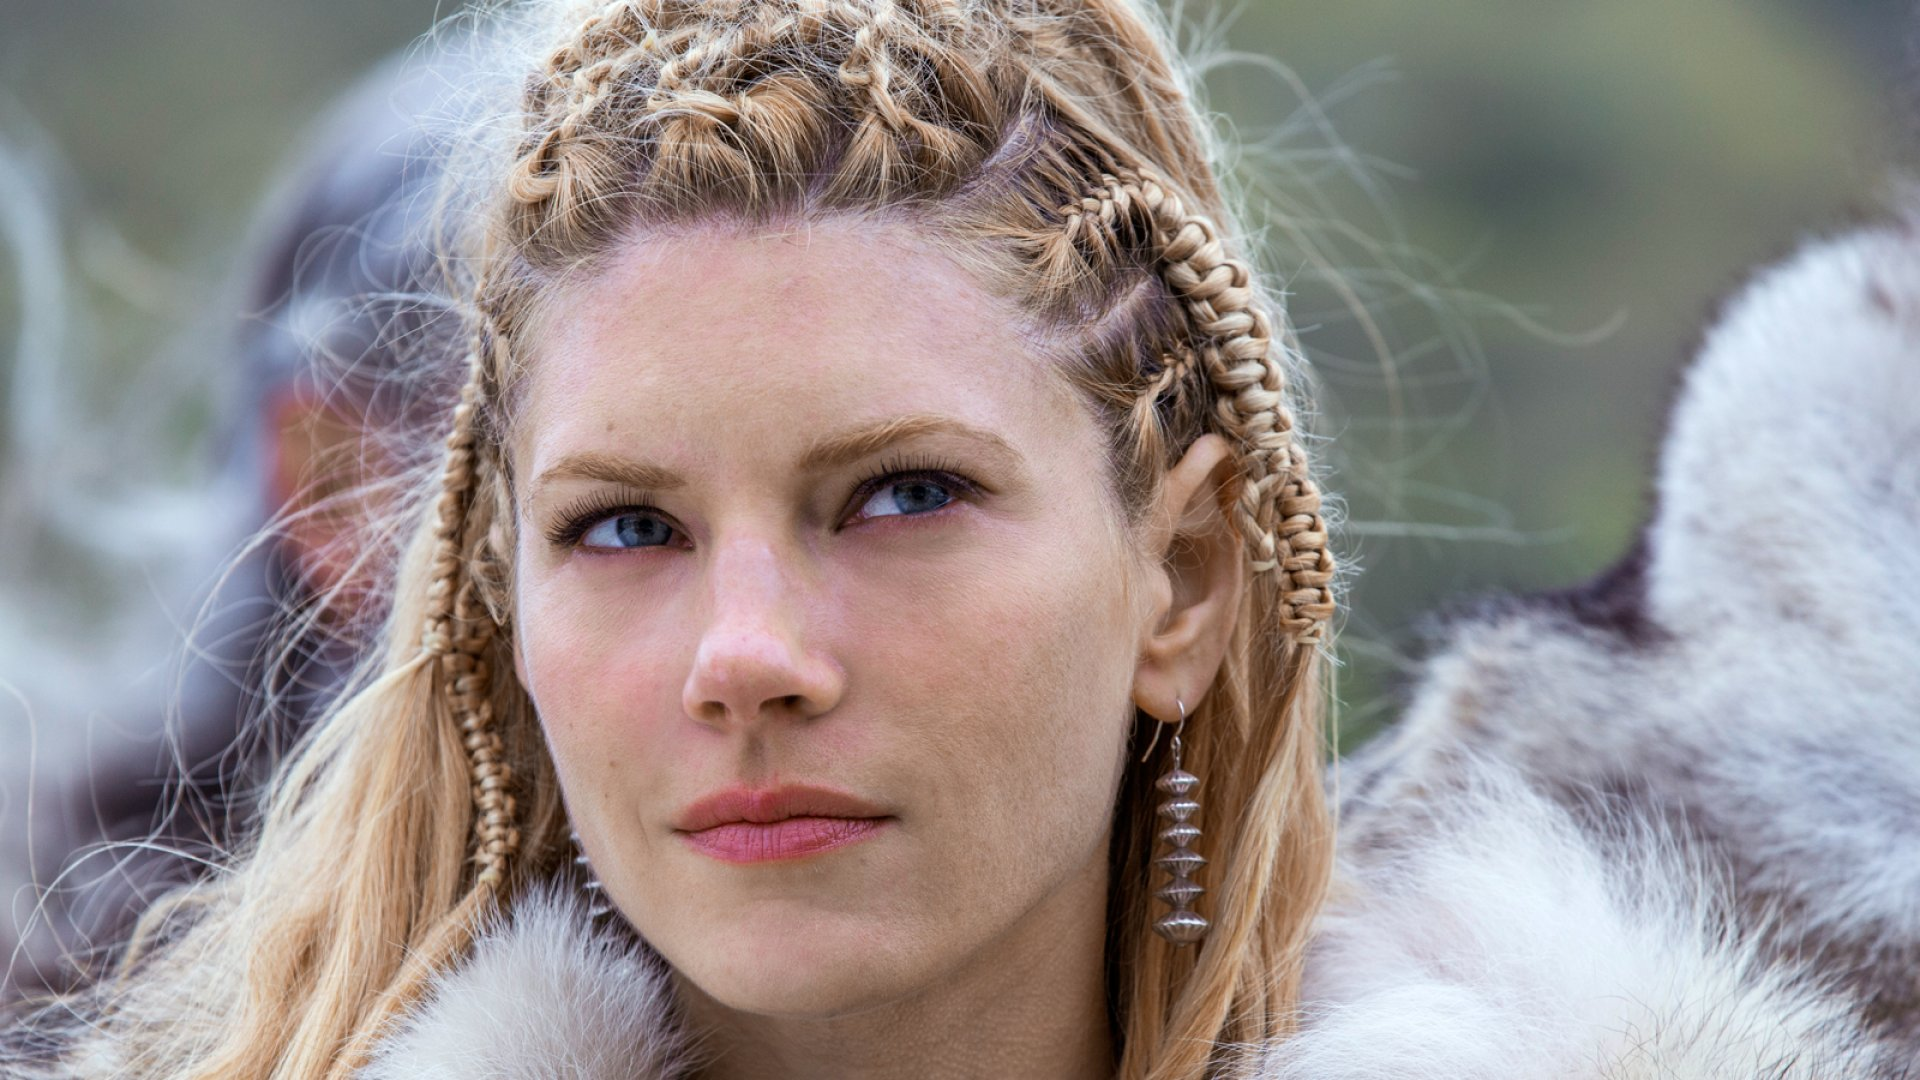 The Unexpected Entrepreneur: An Exclusive Behind-the-Scenes Look at the Hit Show 'Vikings'